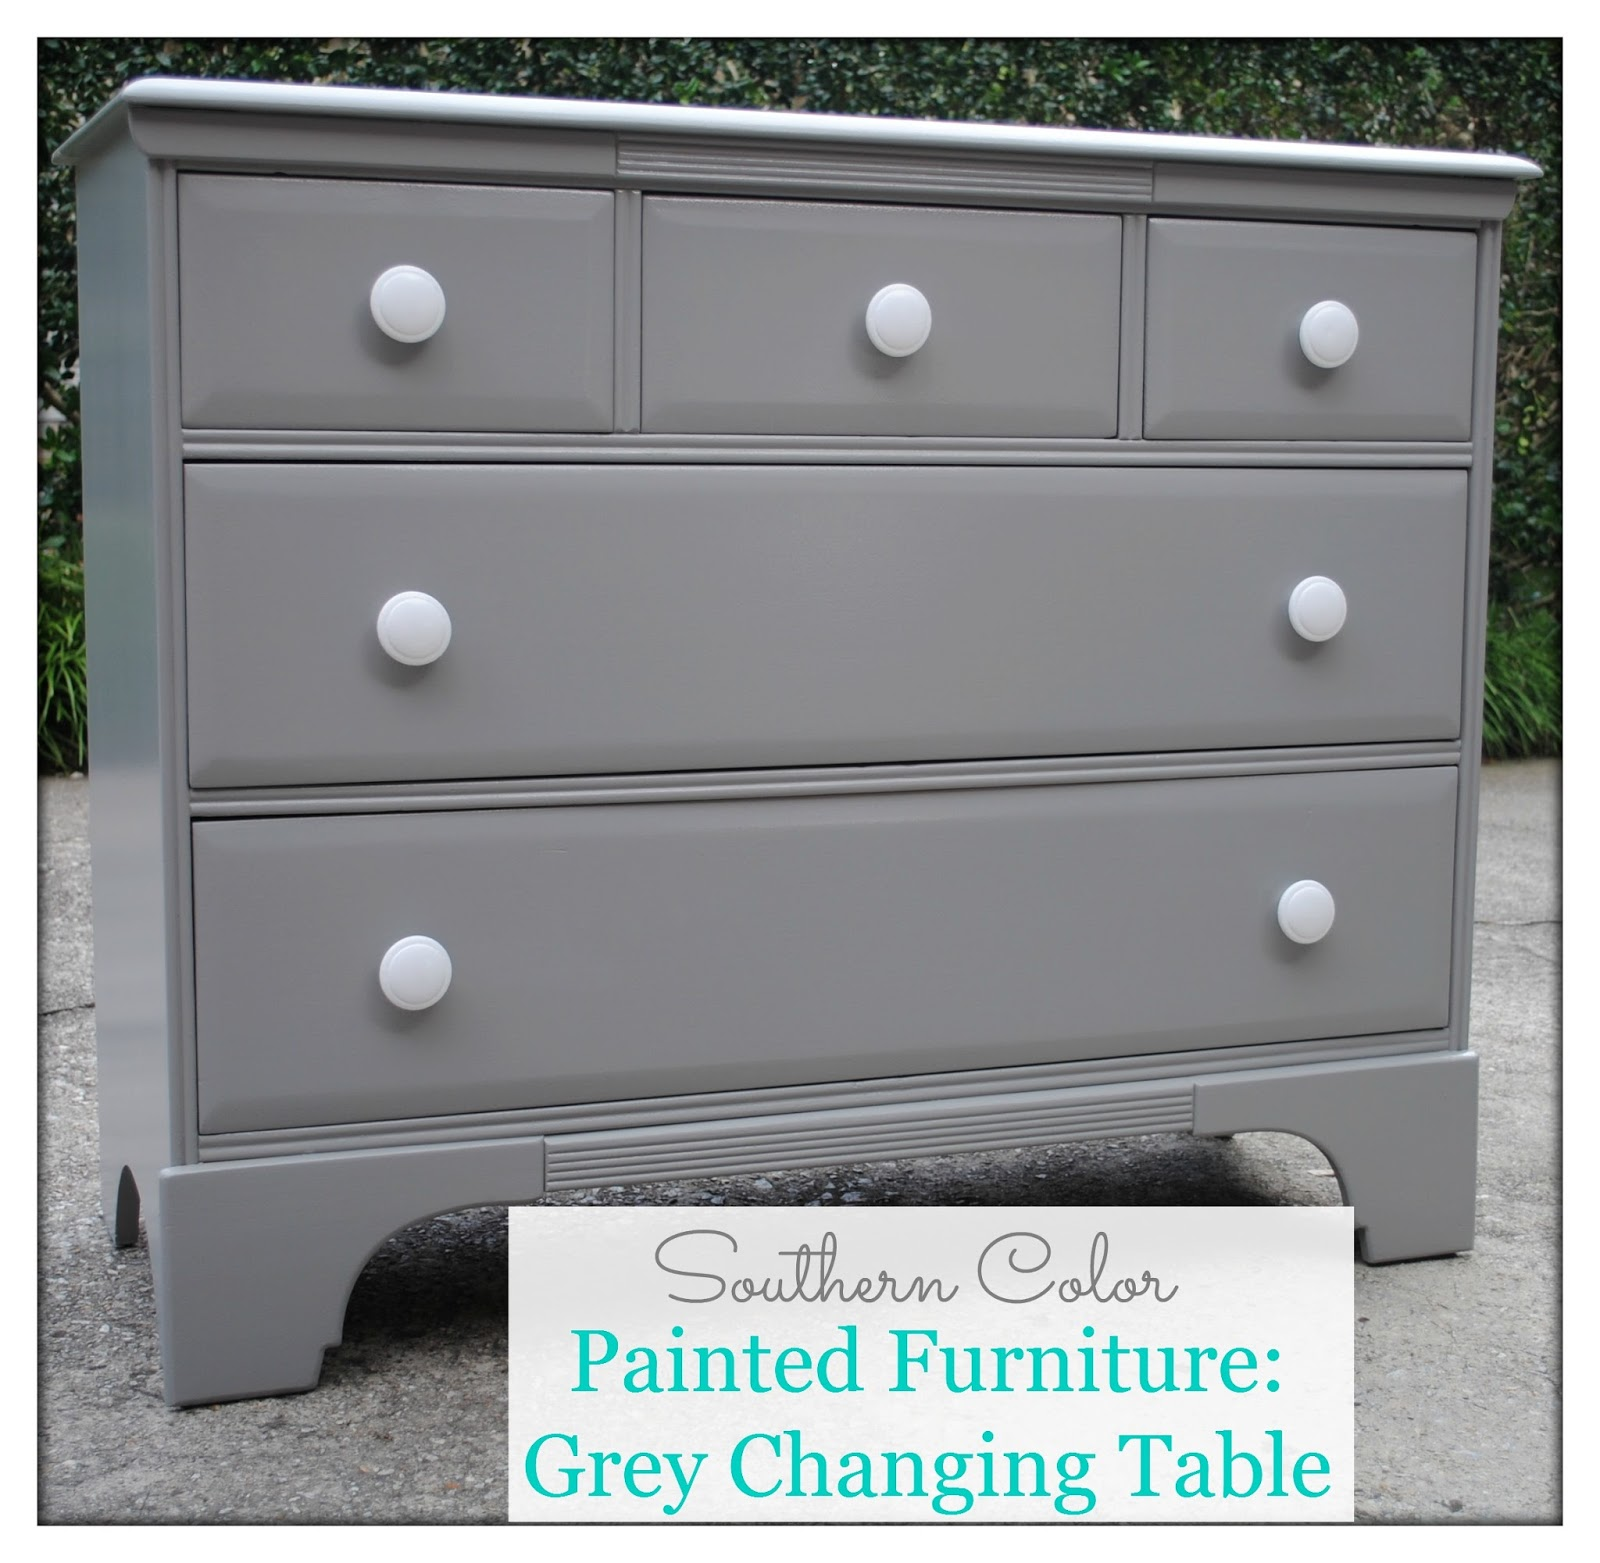 Etonnant Painted Furniture: Grey Changing Table